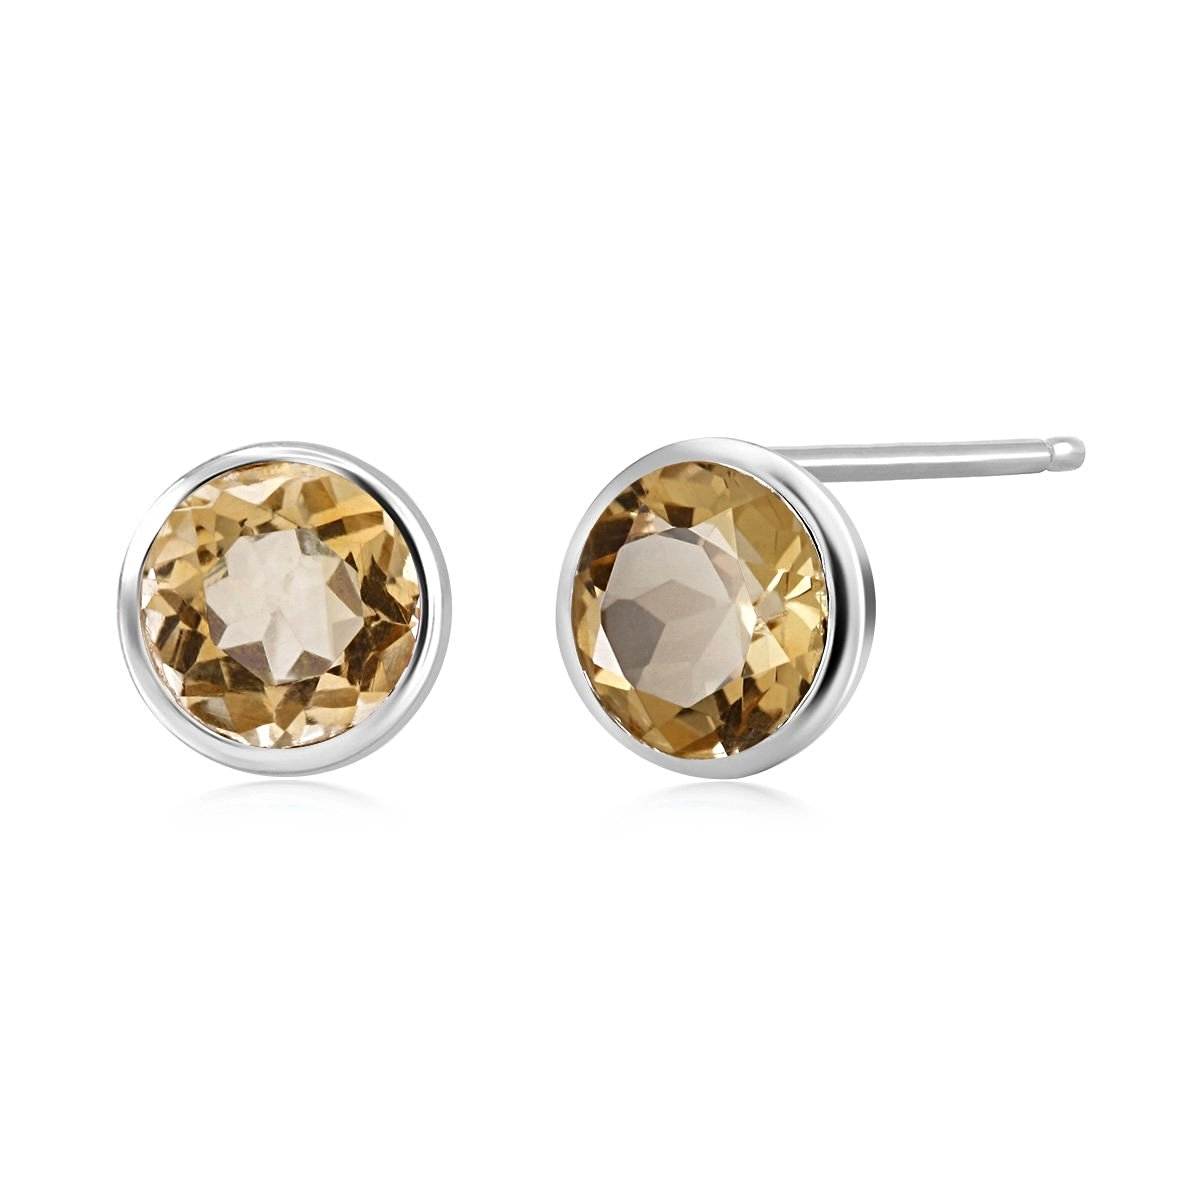 9d9475029 Yellow Citrine Bezel Set Stud Earrings Weighing 3 Carat - Chillatto